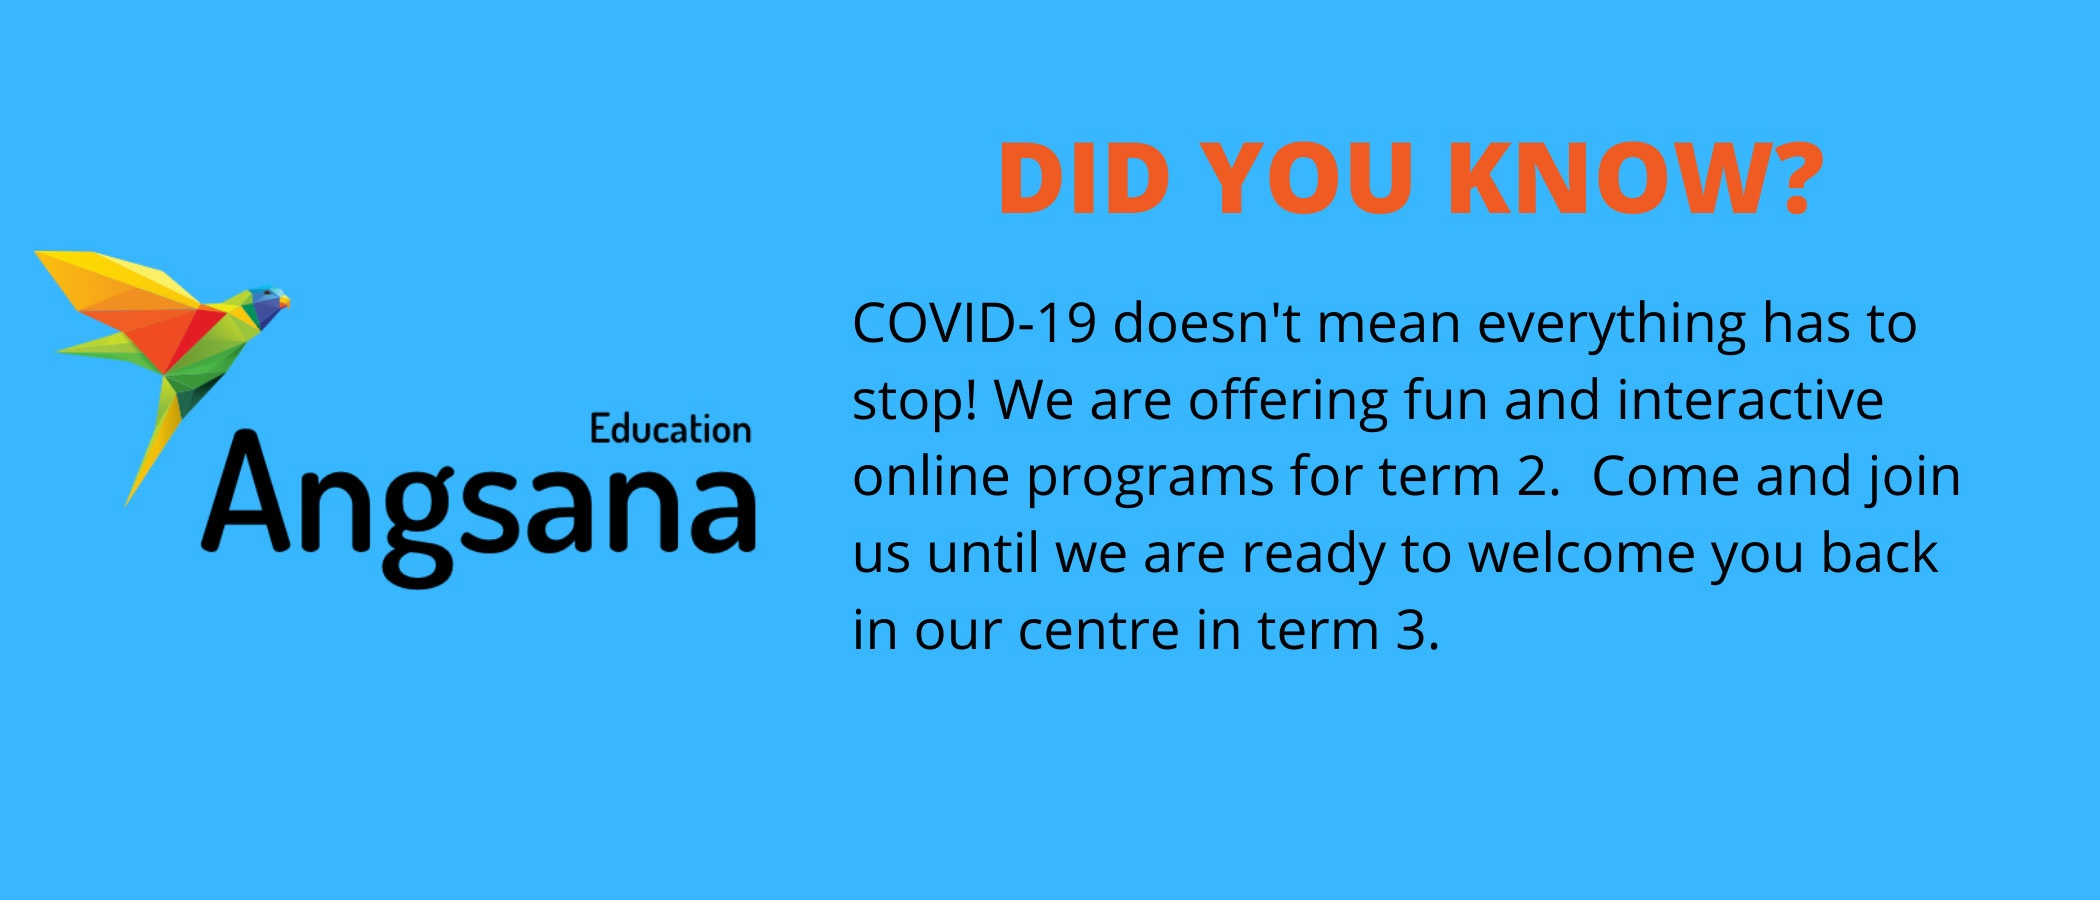 Did You Know Covid-19